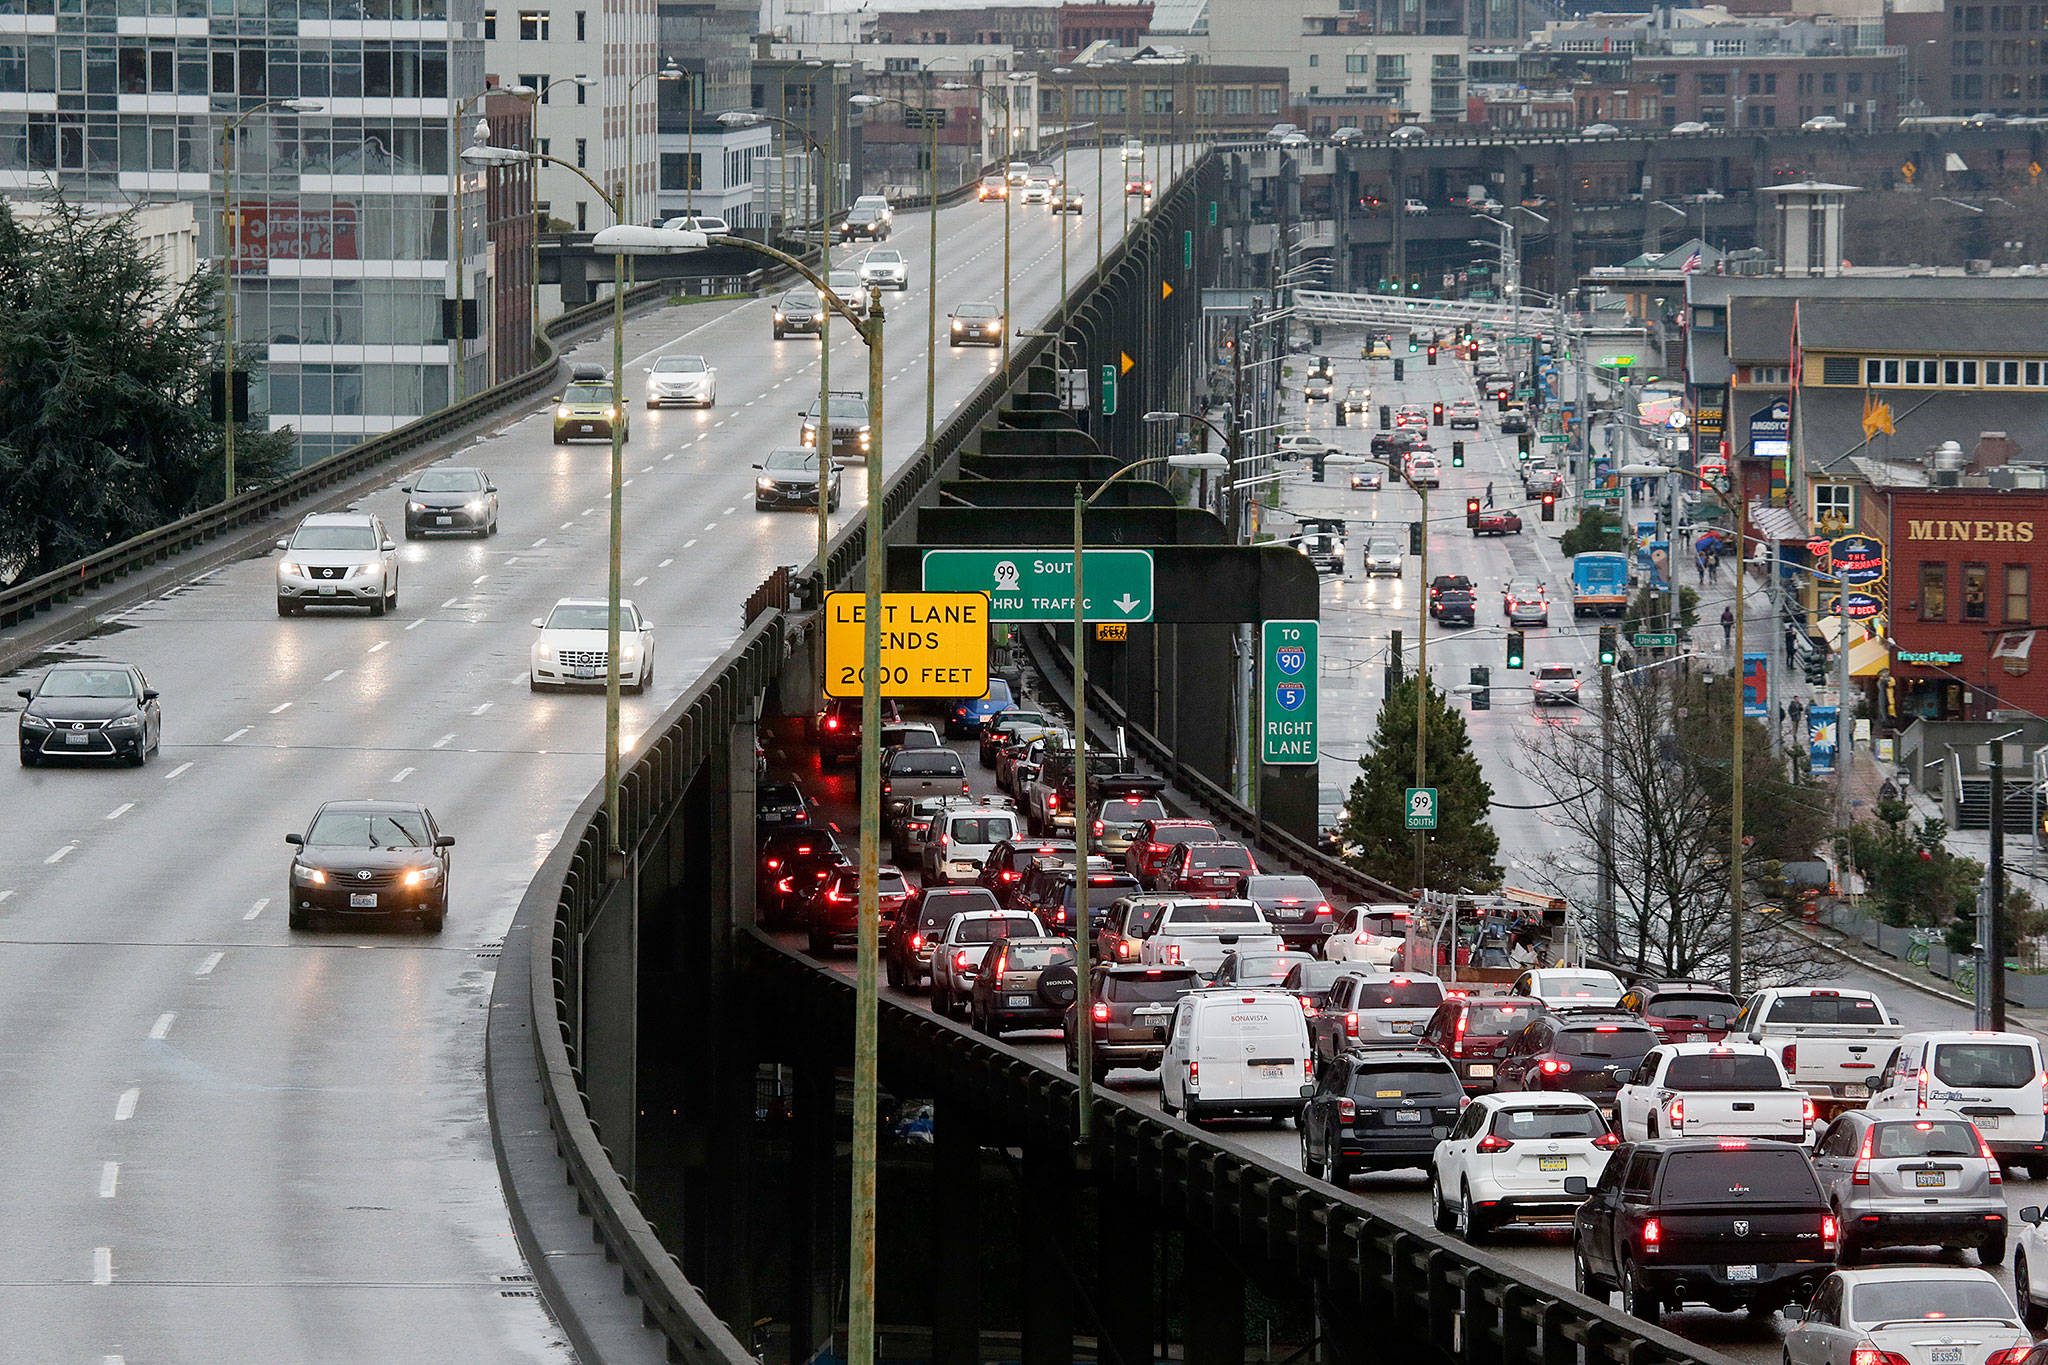 Southbound traffic backs up as northbound drivers cruise on with ease on the State Route 99 viaduct three days before its closure. (Andy Bronson / Herald file)